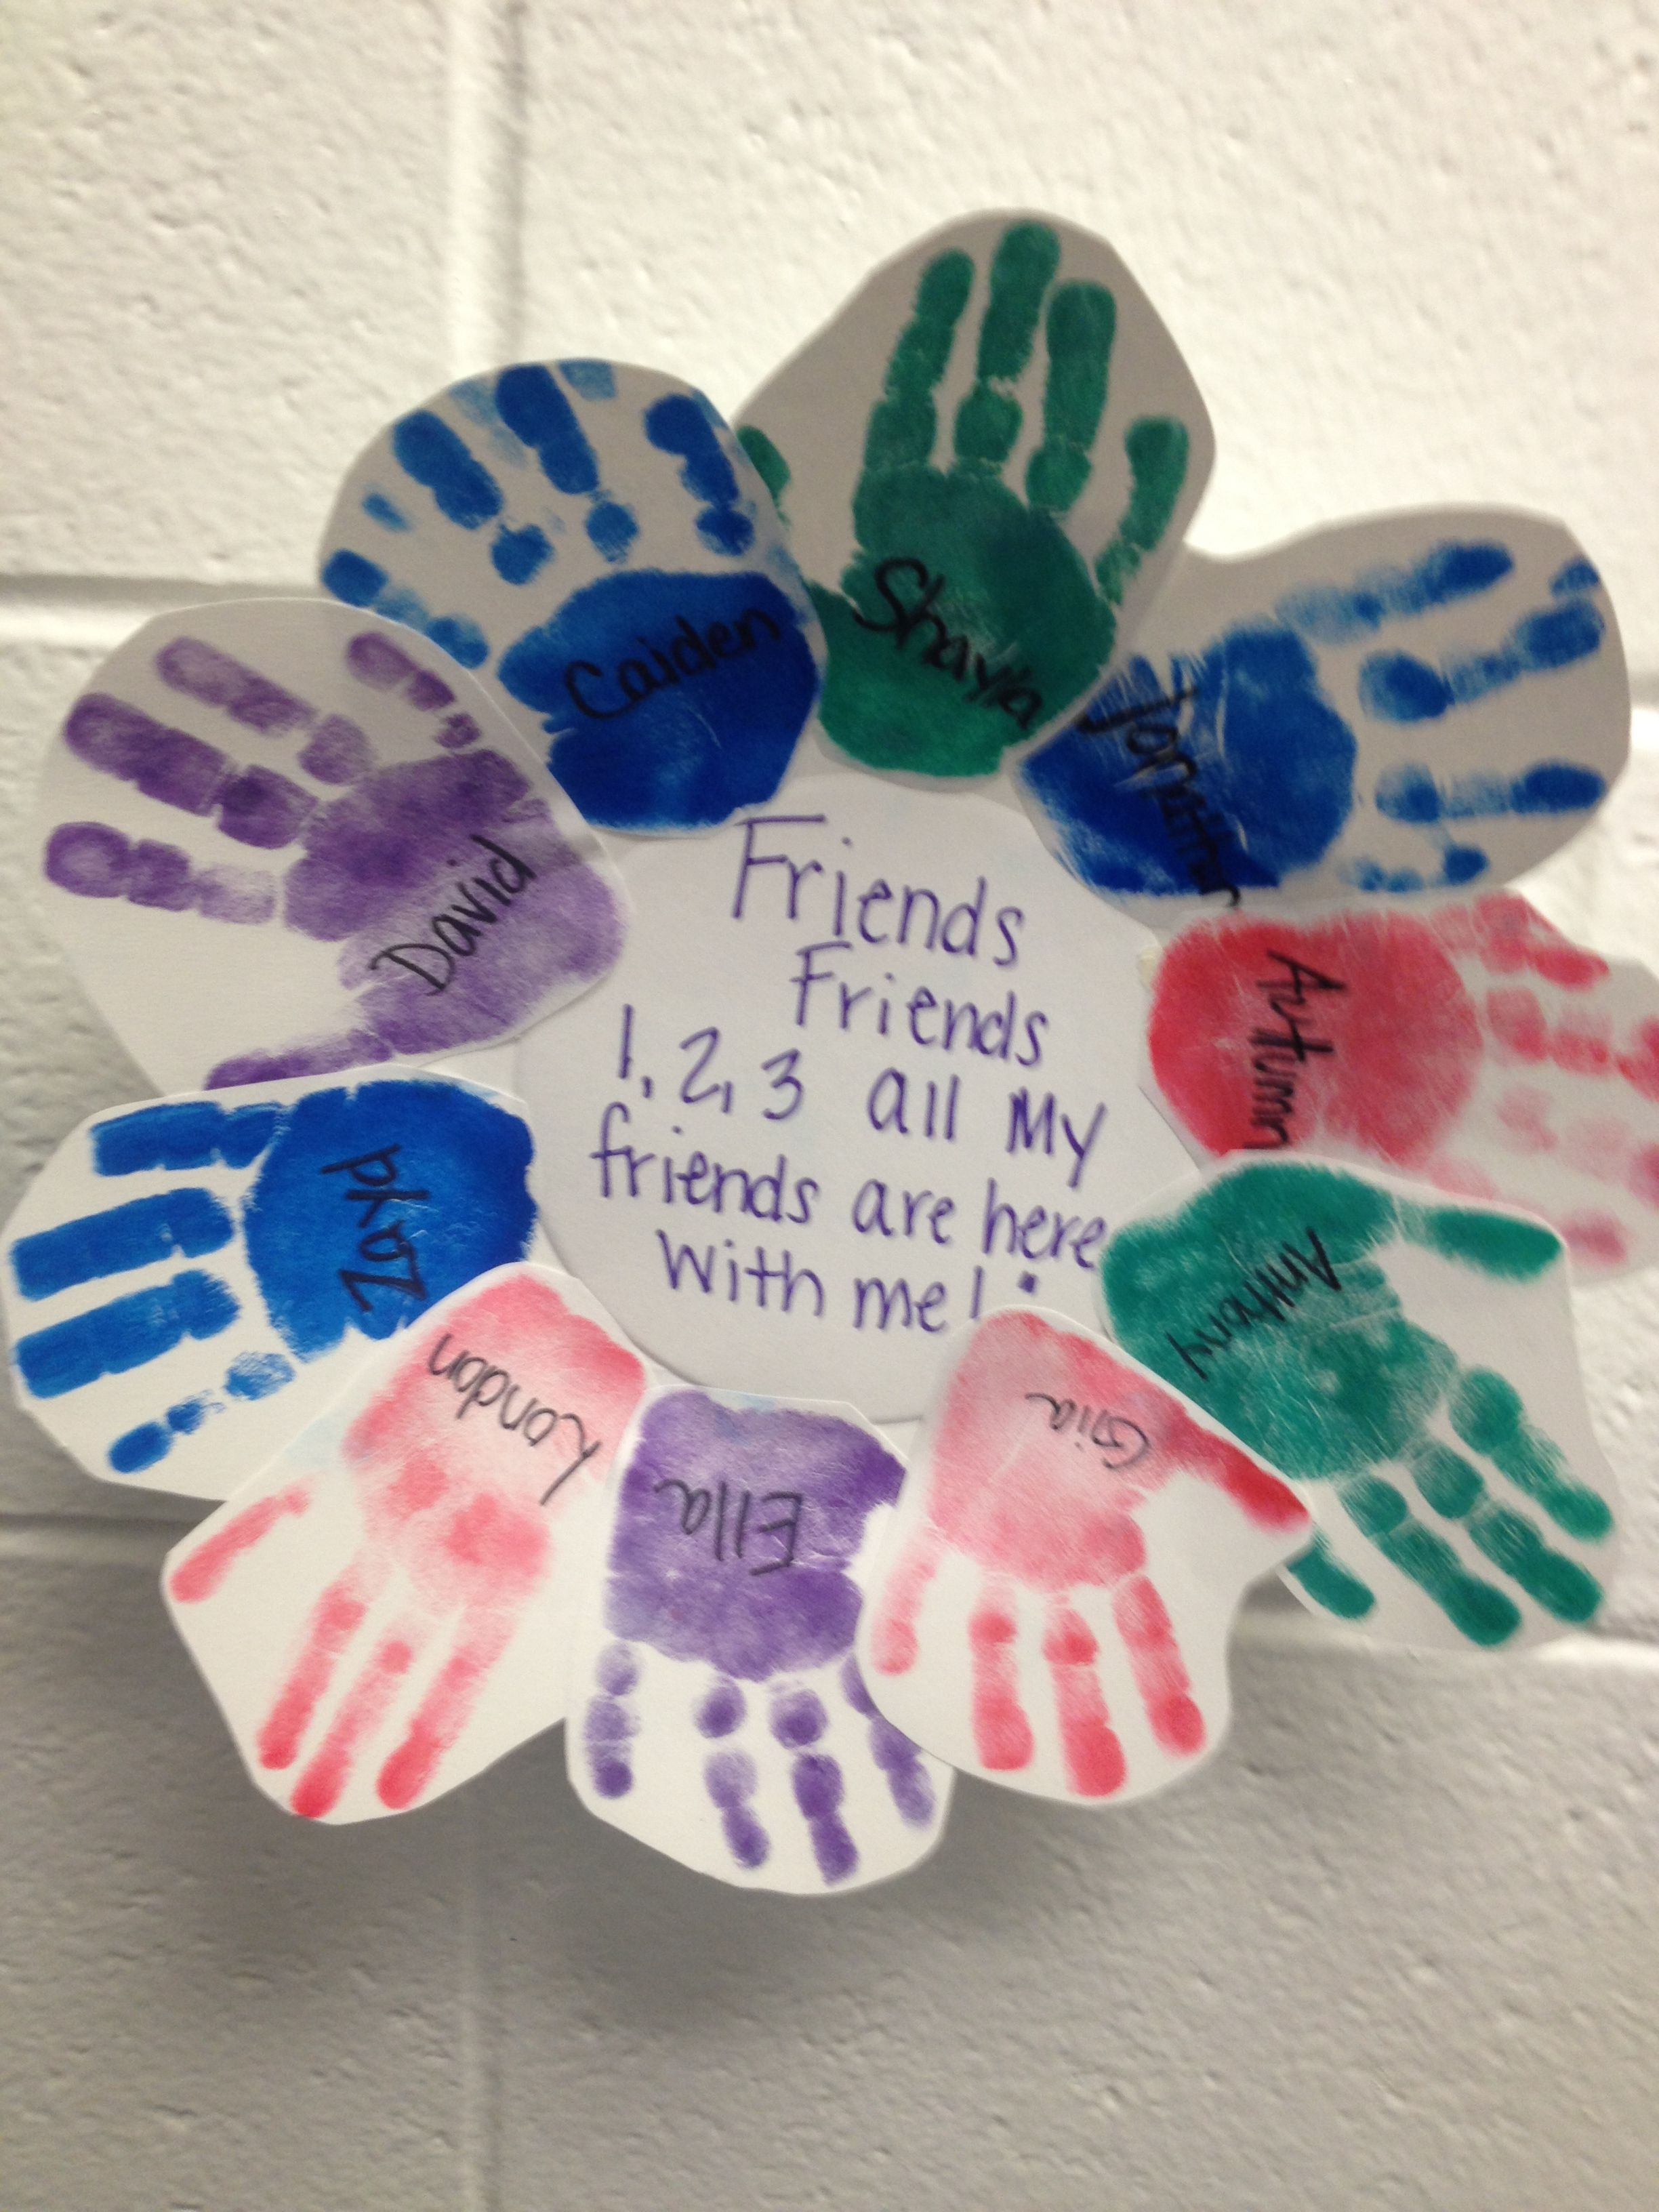 Predownload: Pin By Latoya Morton On Crafts For Kids Preschool Friendship Friendship Crafts Preschool Crafts [ 3264 x 2448 Pixel ]